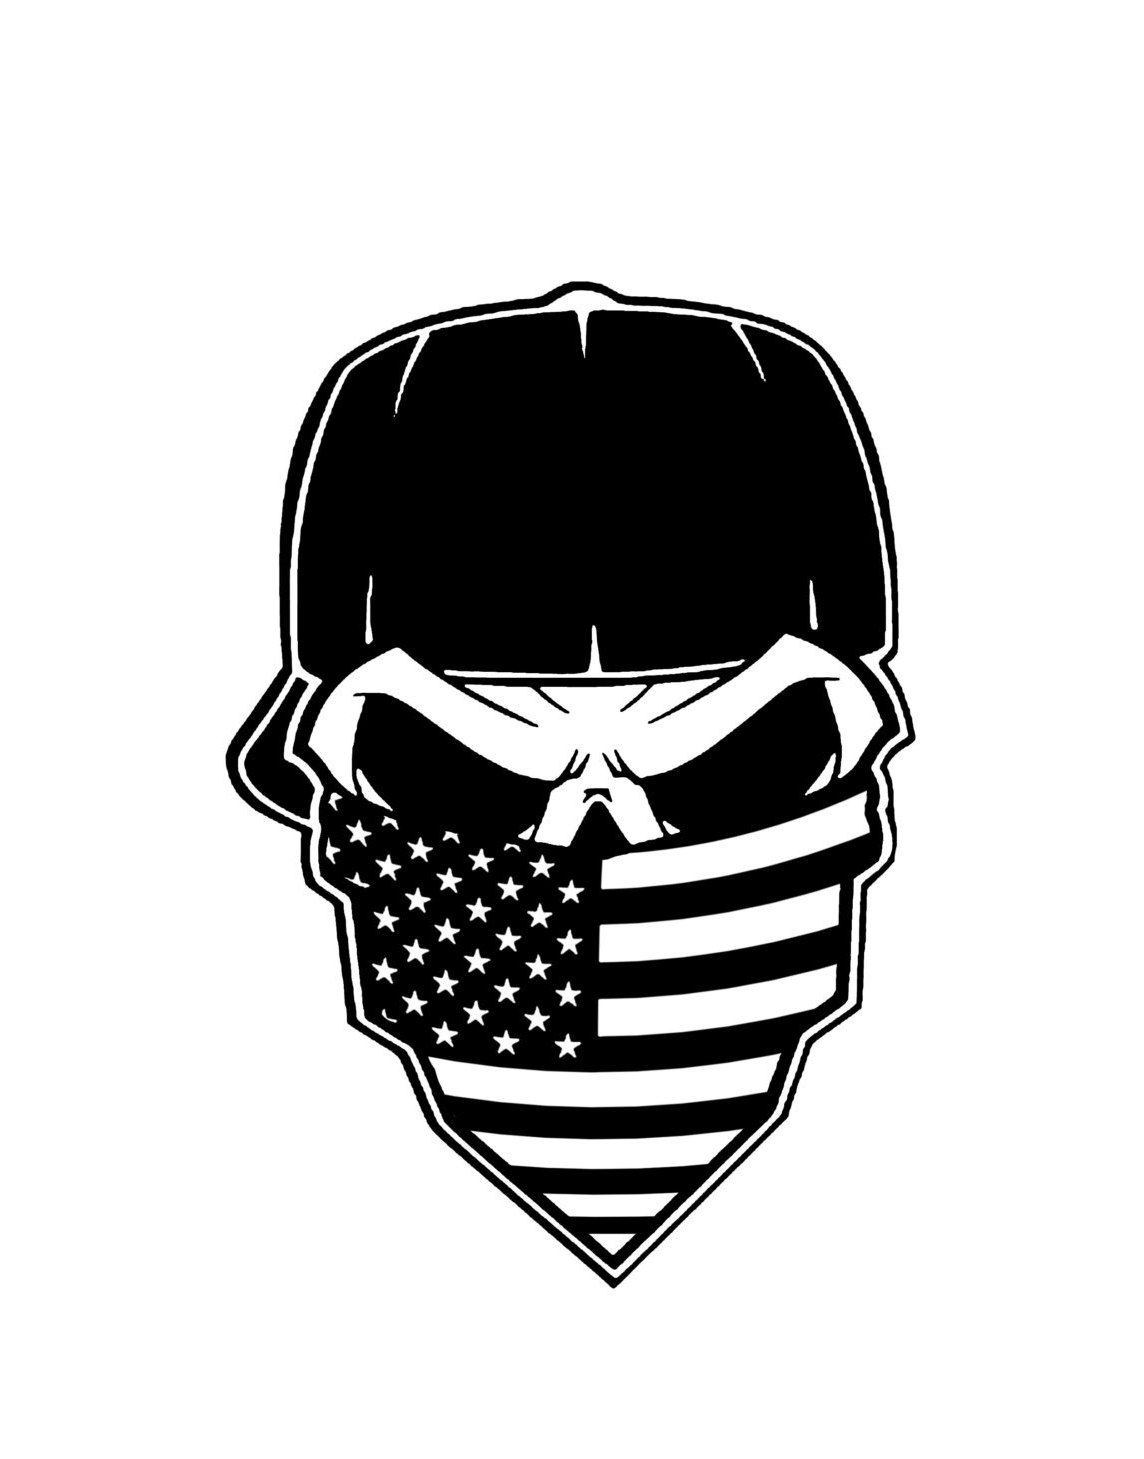 American Flag Bandana Skull Vinyl Decal Sticker Art Design